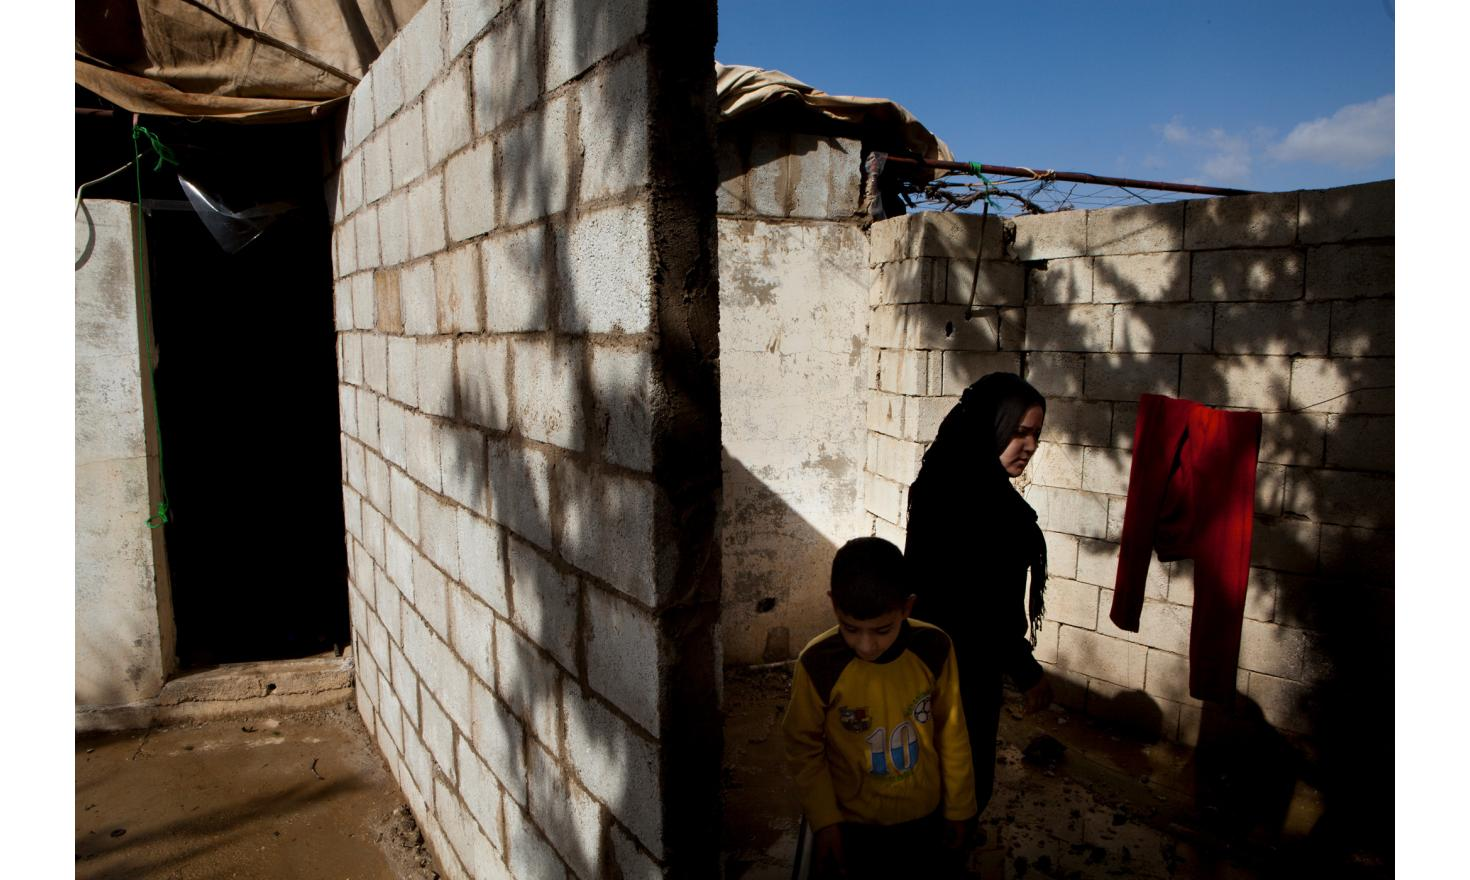 Jalil Camp in Bekaa - The double suffering of Syrian's Palestinian refugees